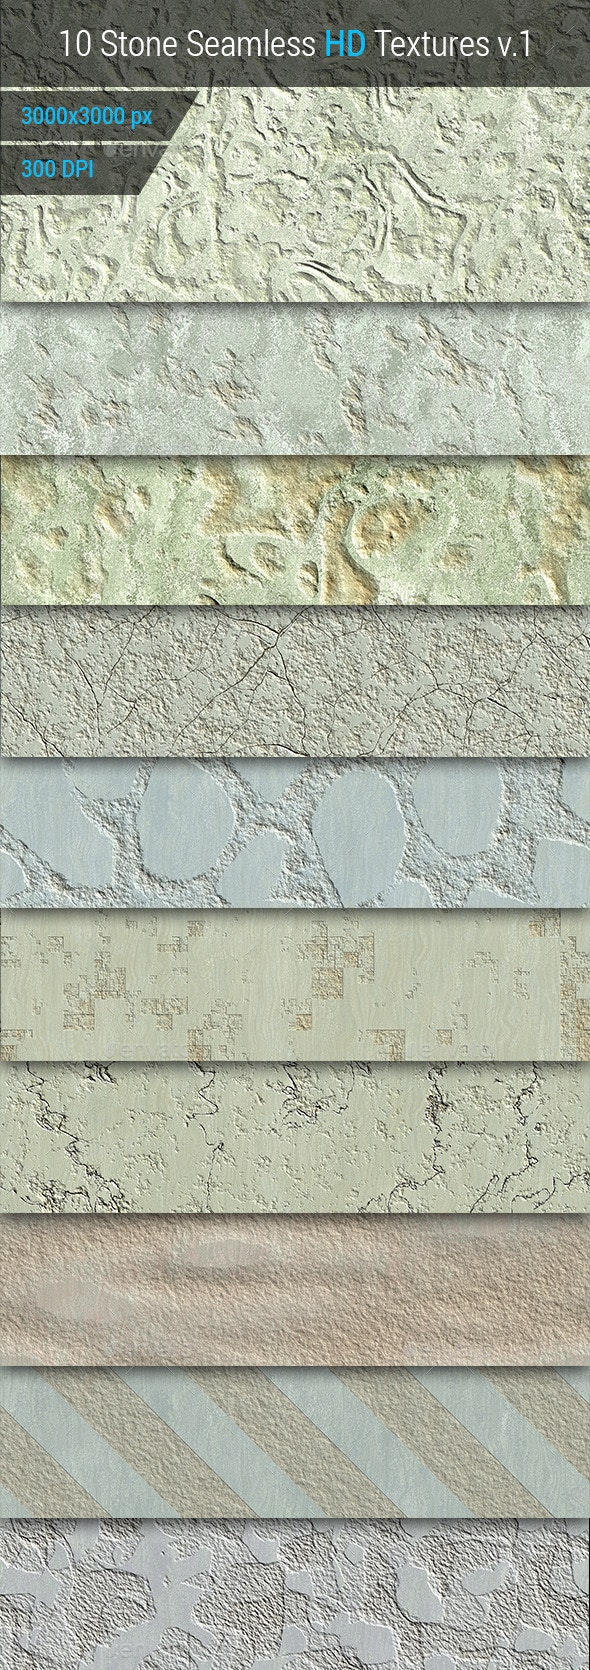 Stone Seamless and Tileable HD Textures Set - Stone Textures